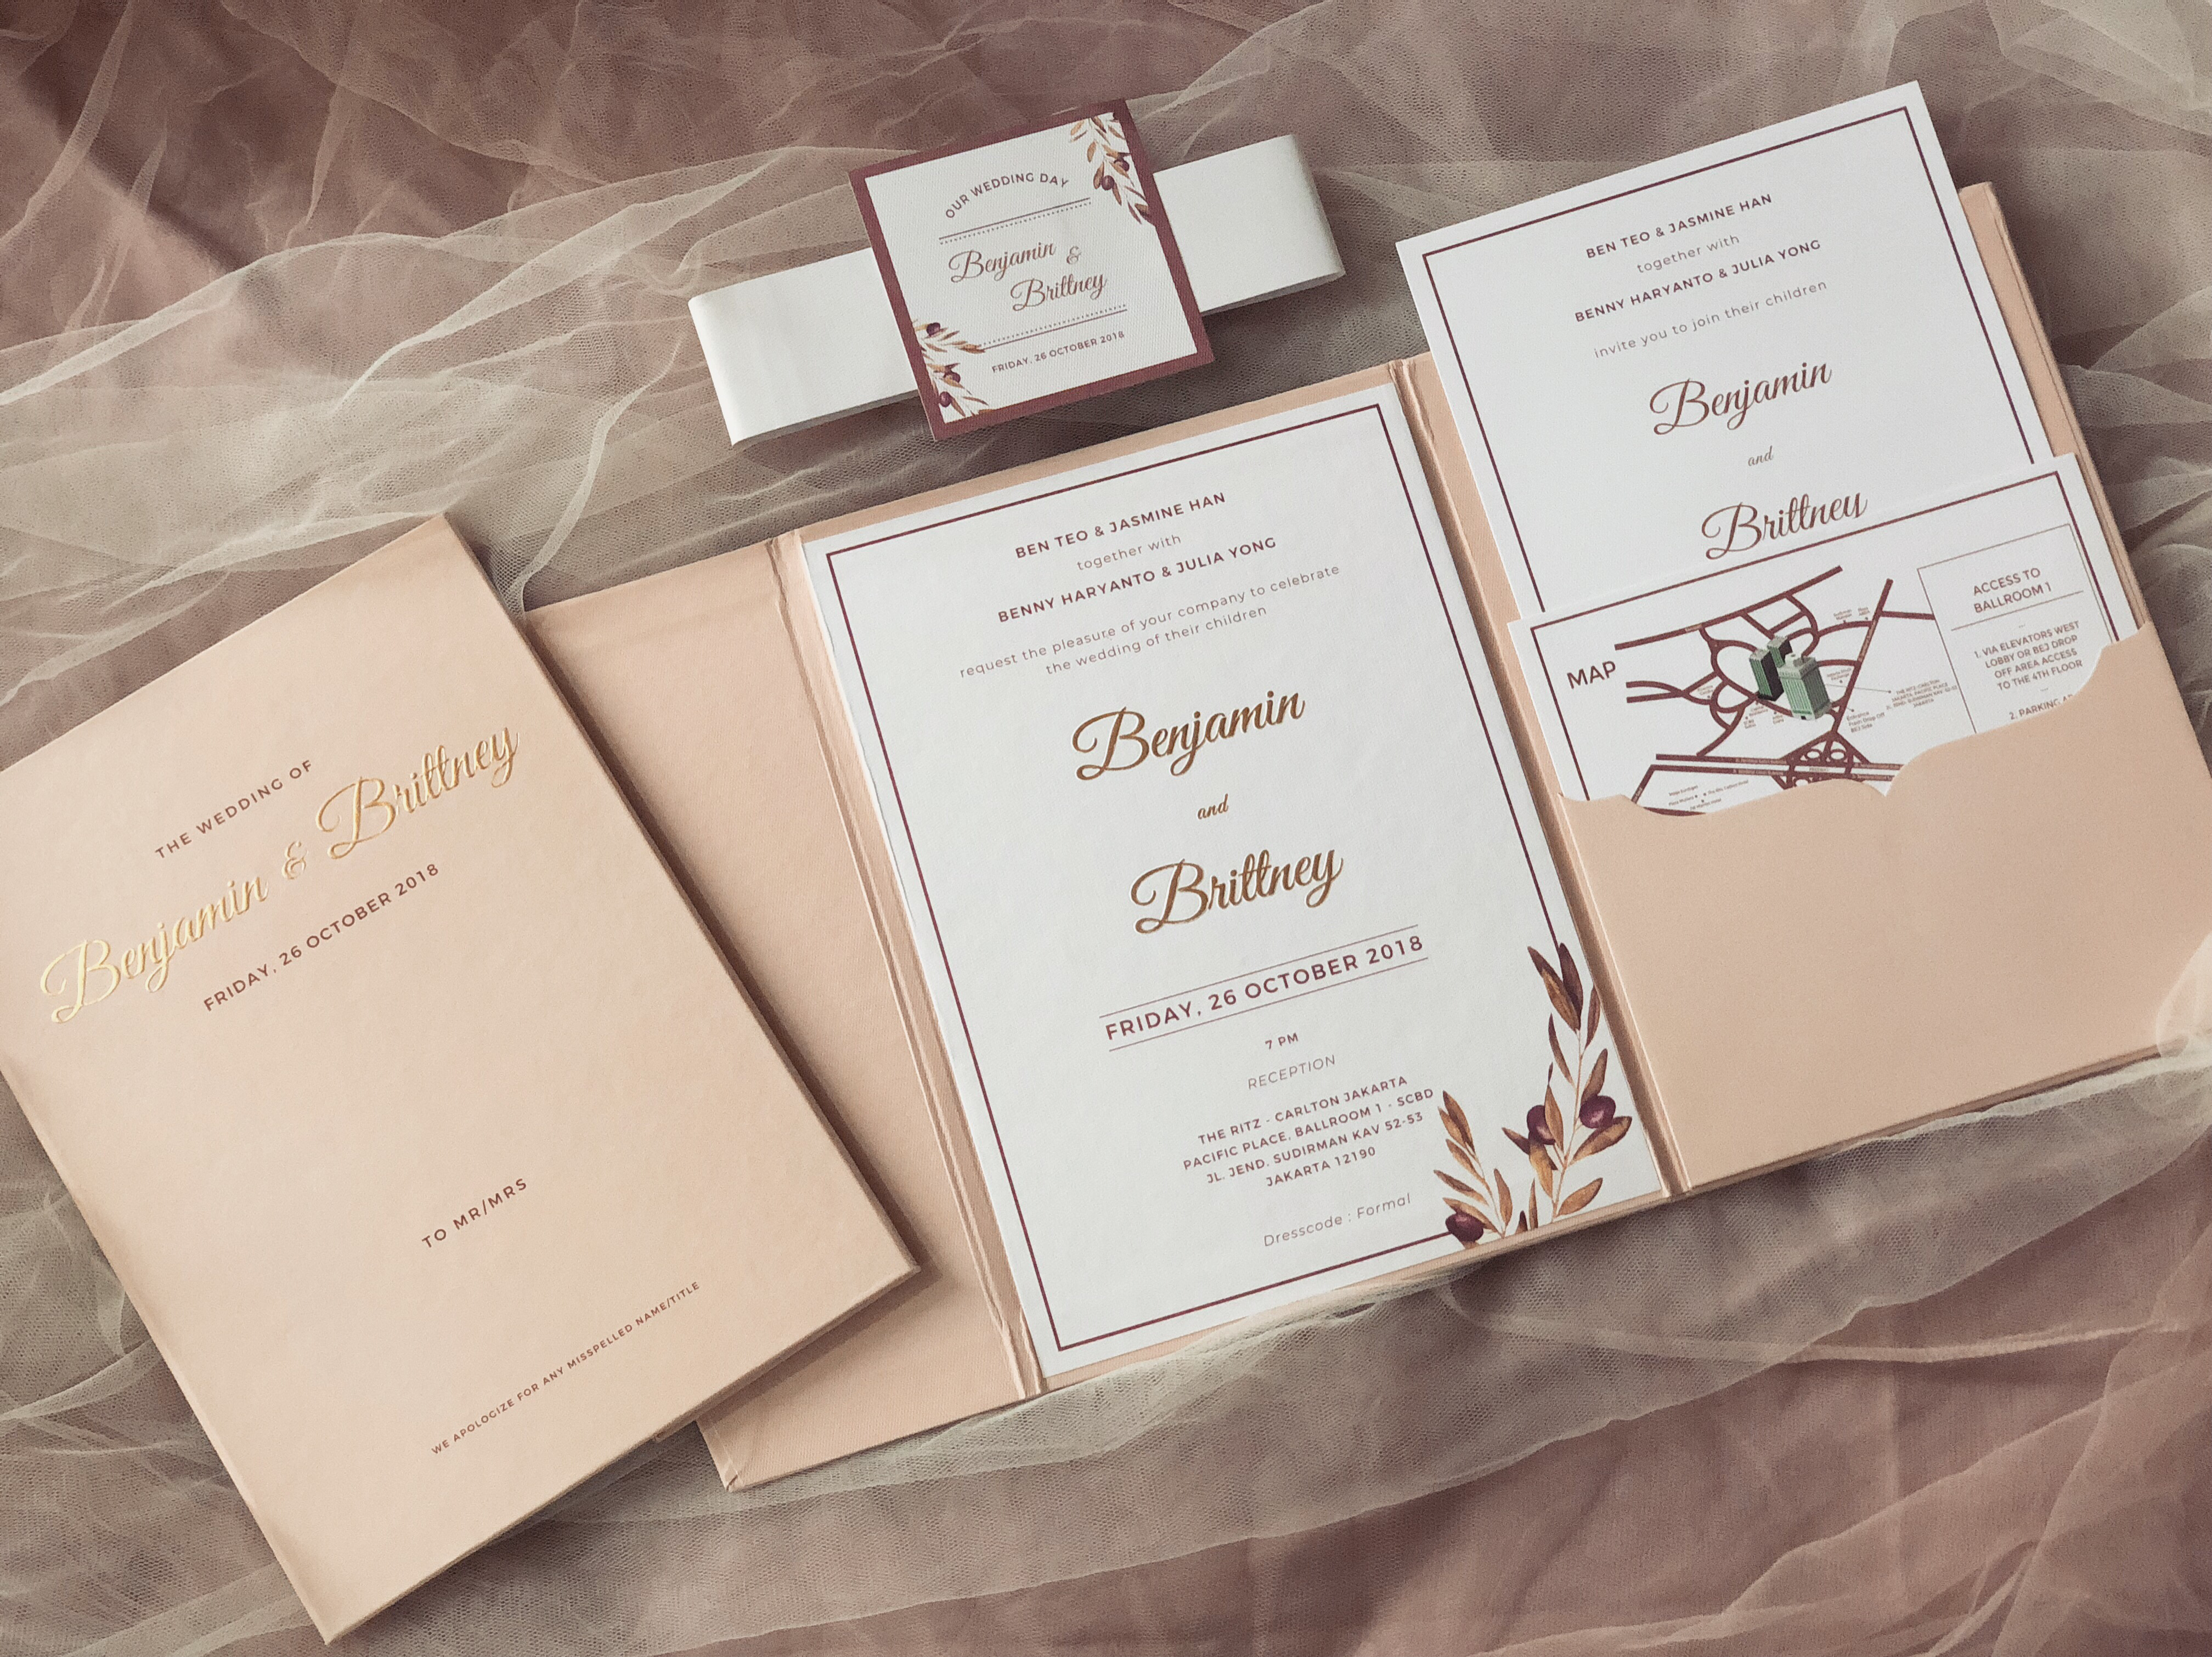 Benjamin Brittney Wedding Invitation By Book Idea